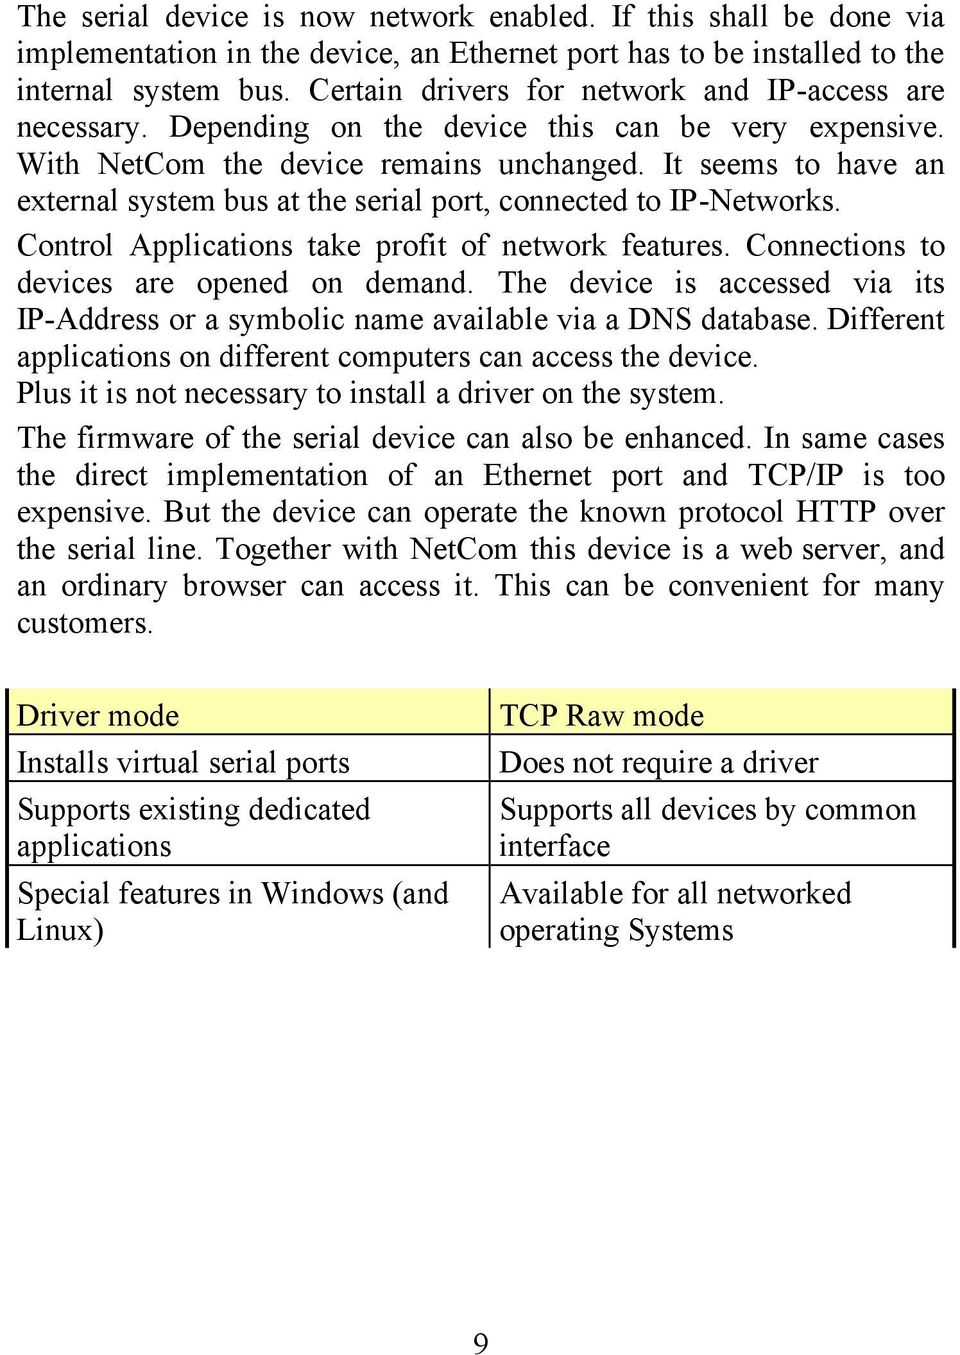 It seems to have an external system bus at the serial port, connected to IP-Networks. Control Applications take profit of network features. Connections to devices are opened on demand.